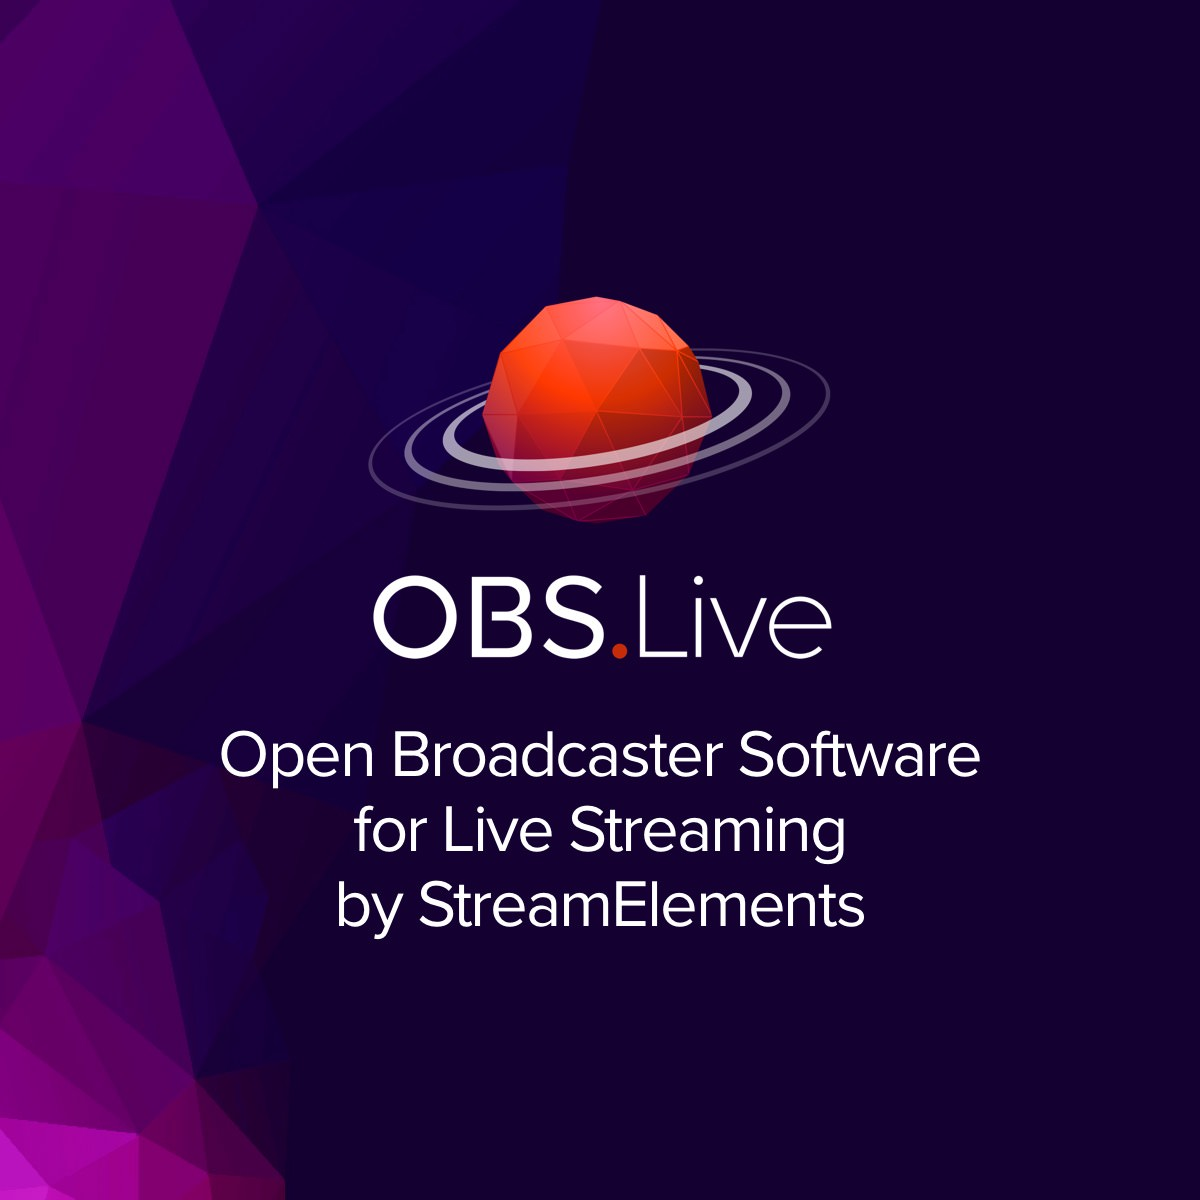 StreamElements OBS Live | Streaming Open Broadcaster Software